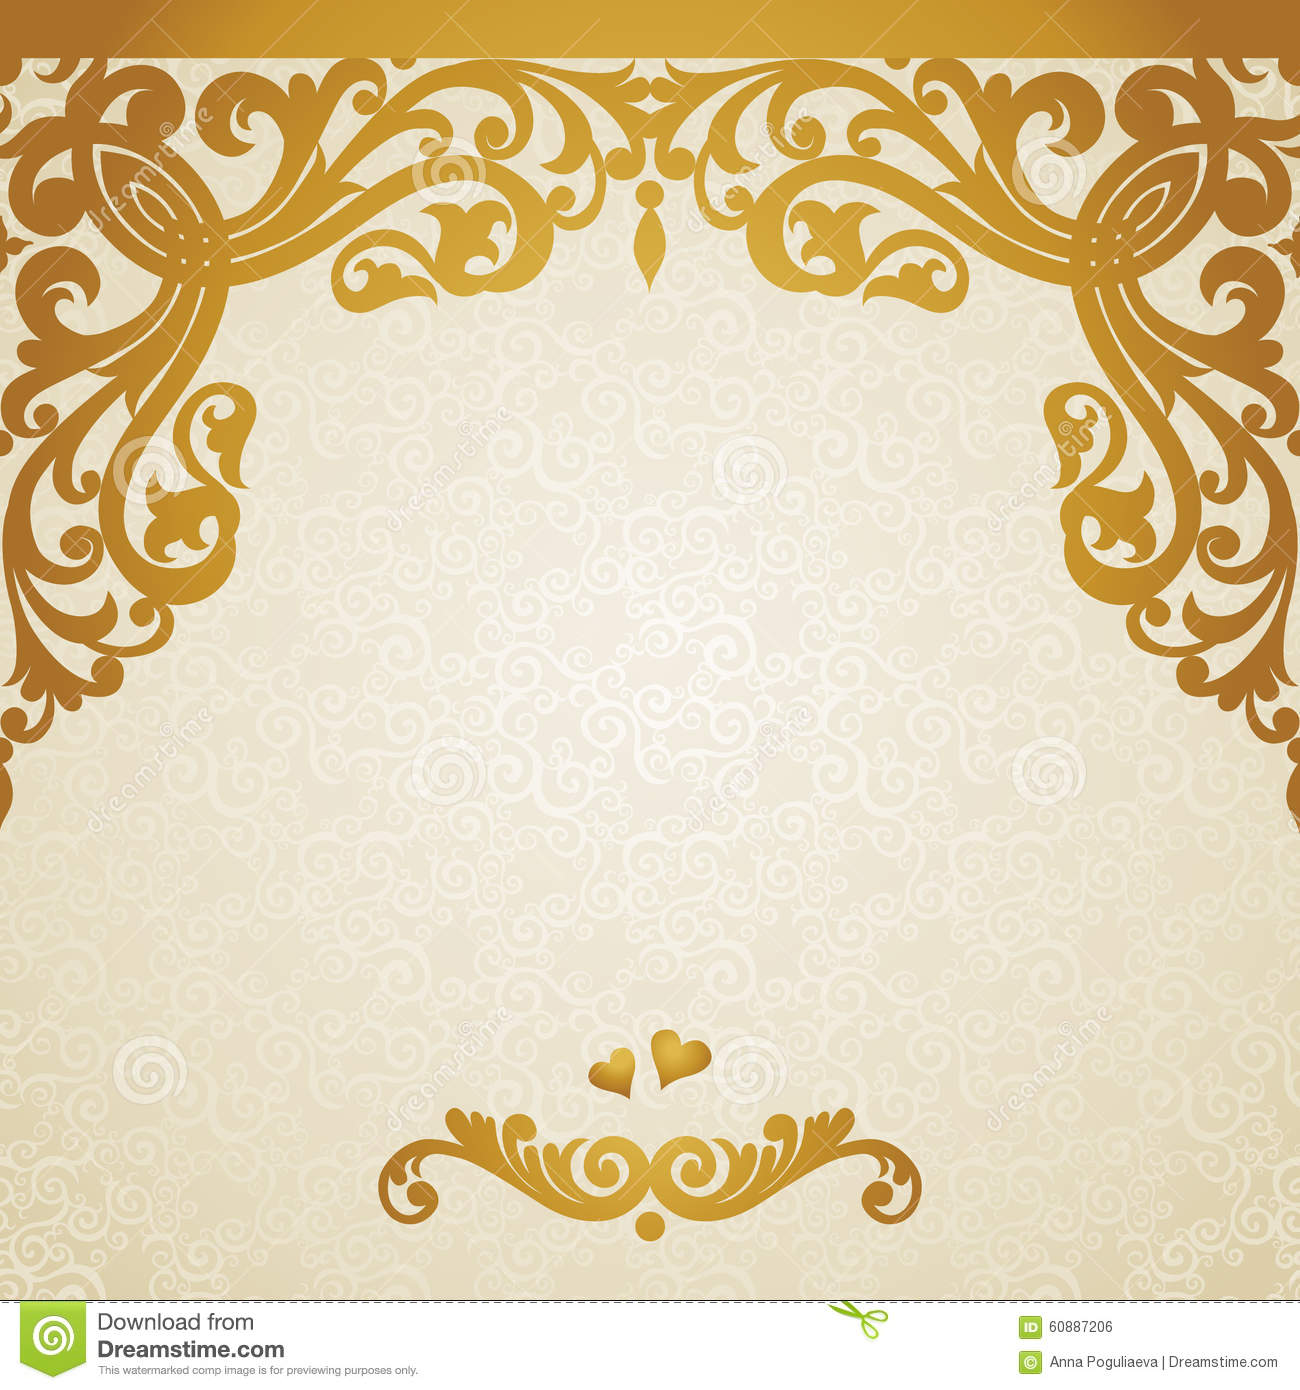 vector ornate border in victorian style cartoon vector